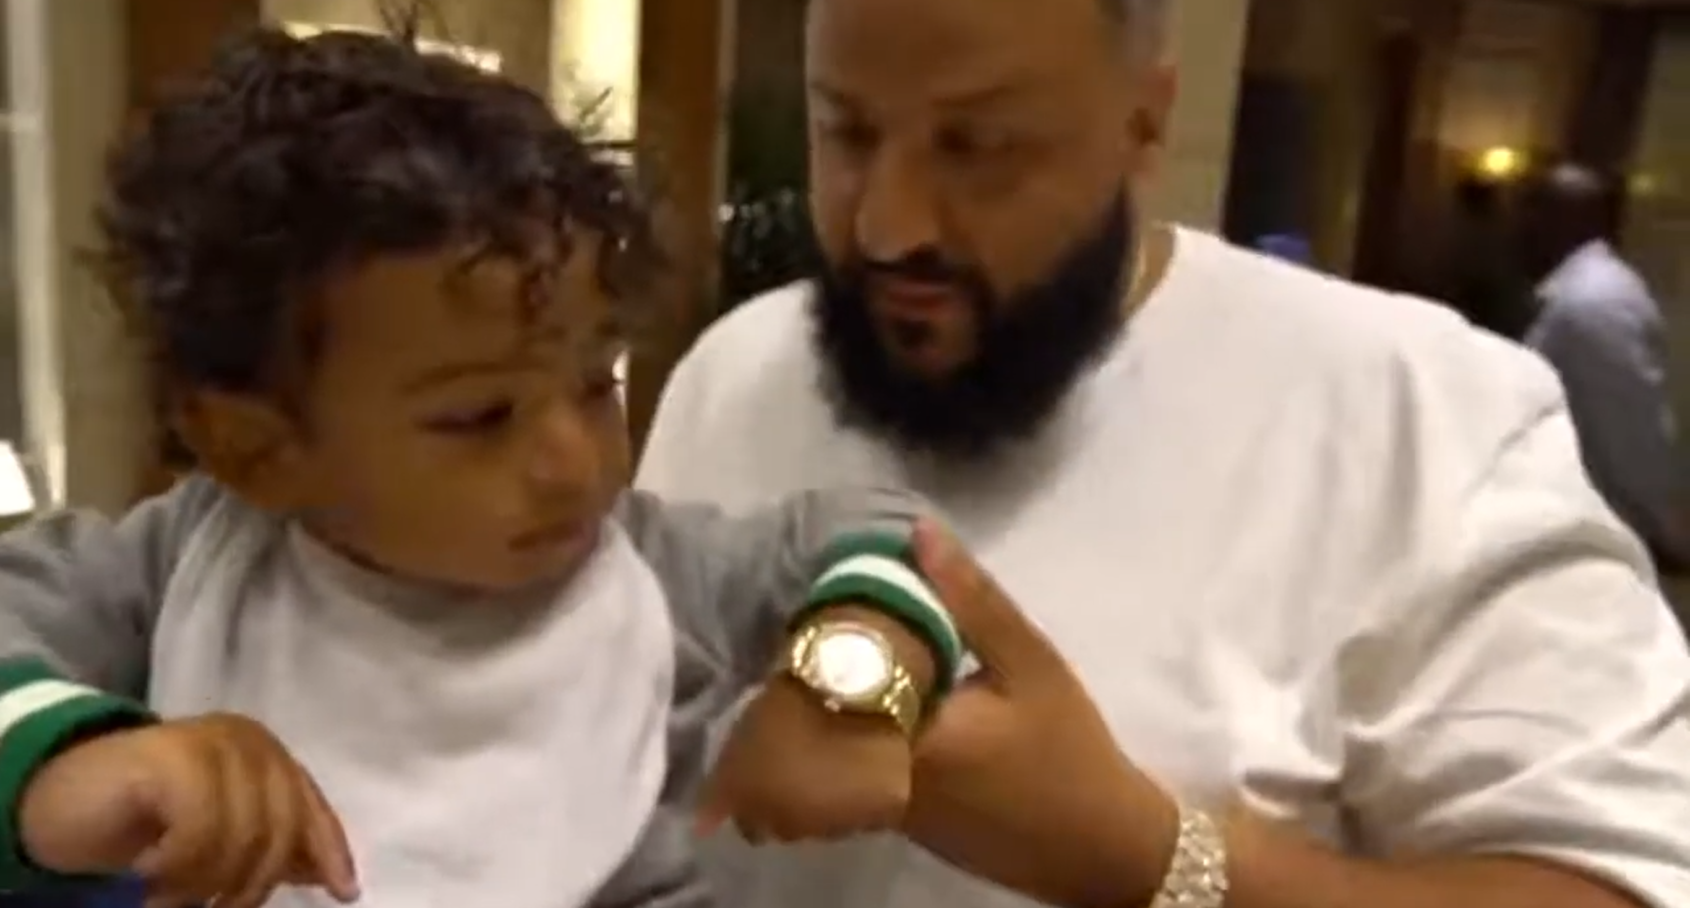 Ice, ice baby: famous kids wearing ludicrously expensive watches